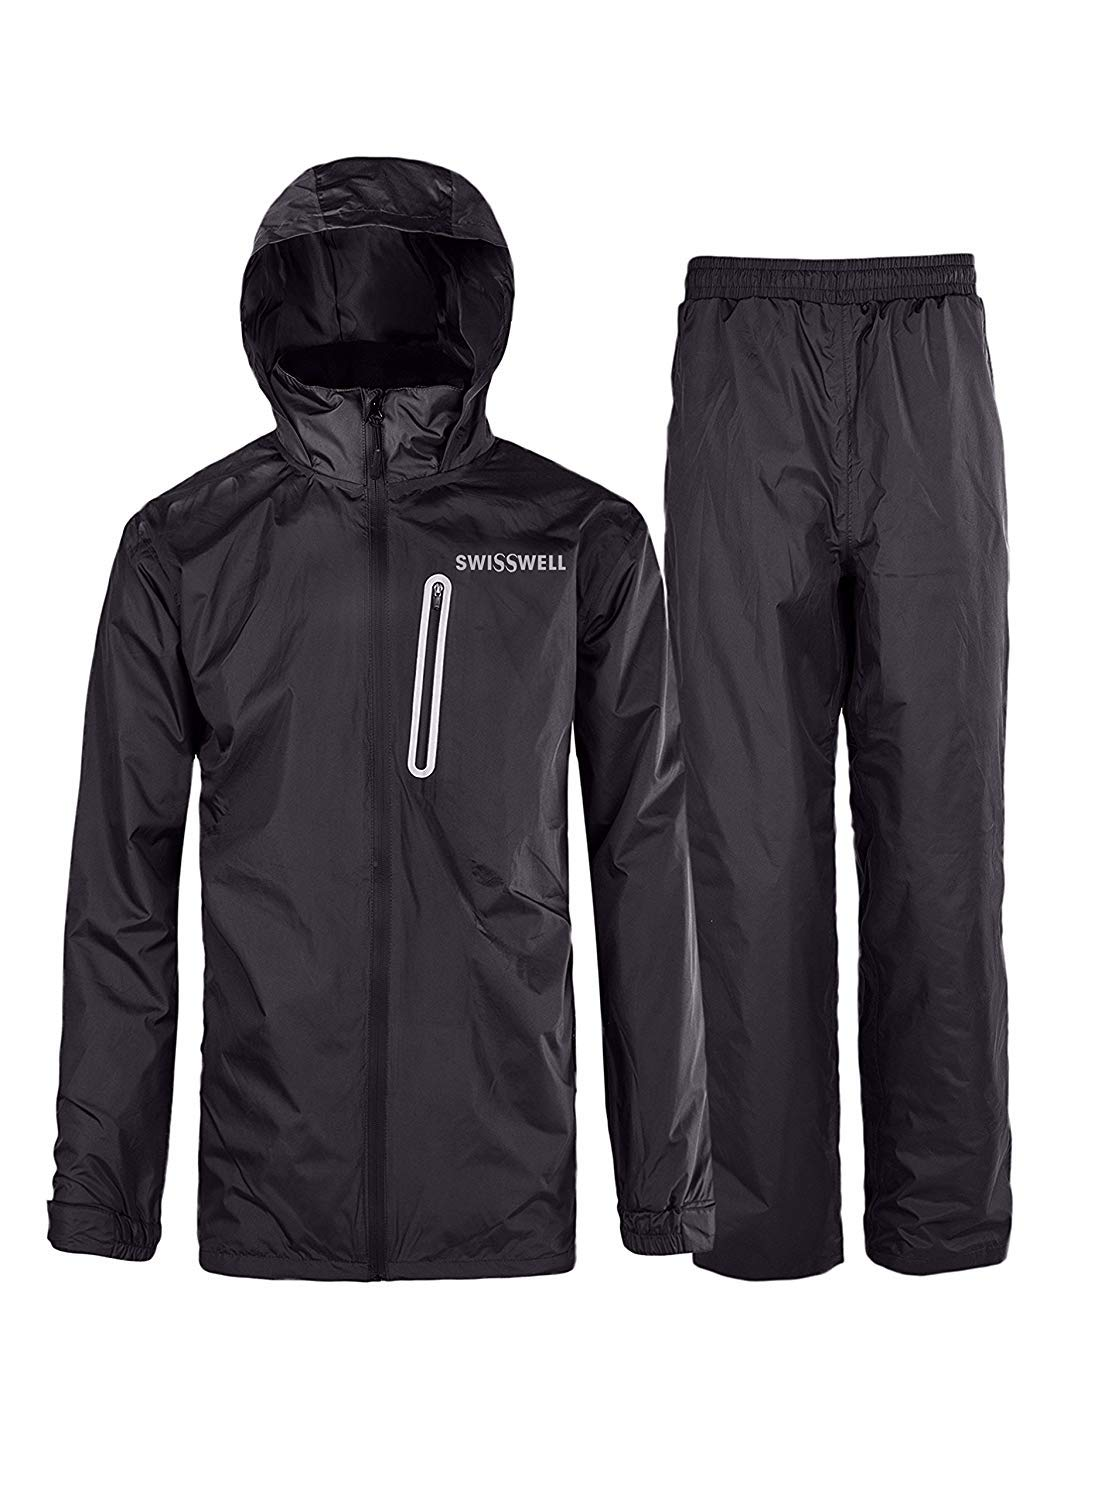 SWISSWELL Waterproof Rain Suit/Jacket and Pants for Men Charcoal XX-Large by SWISSWELL